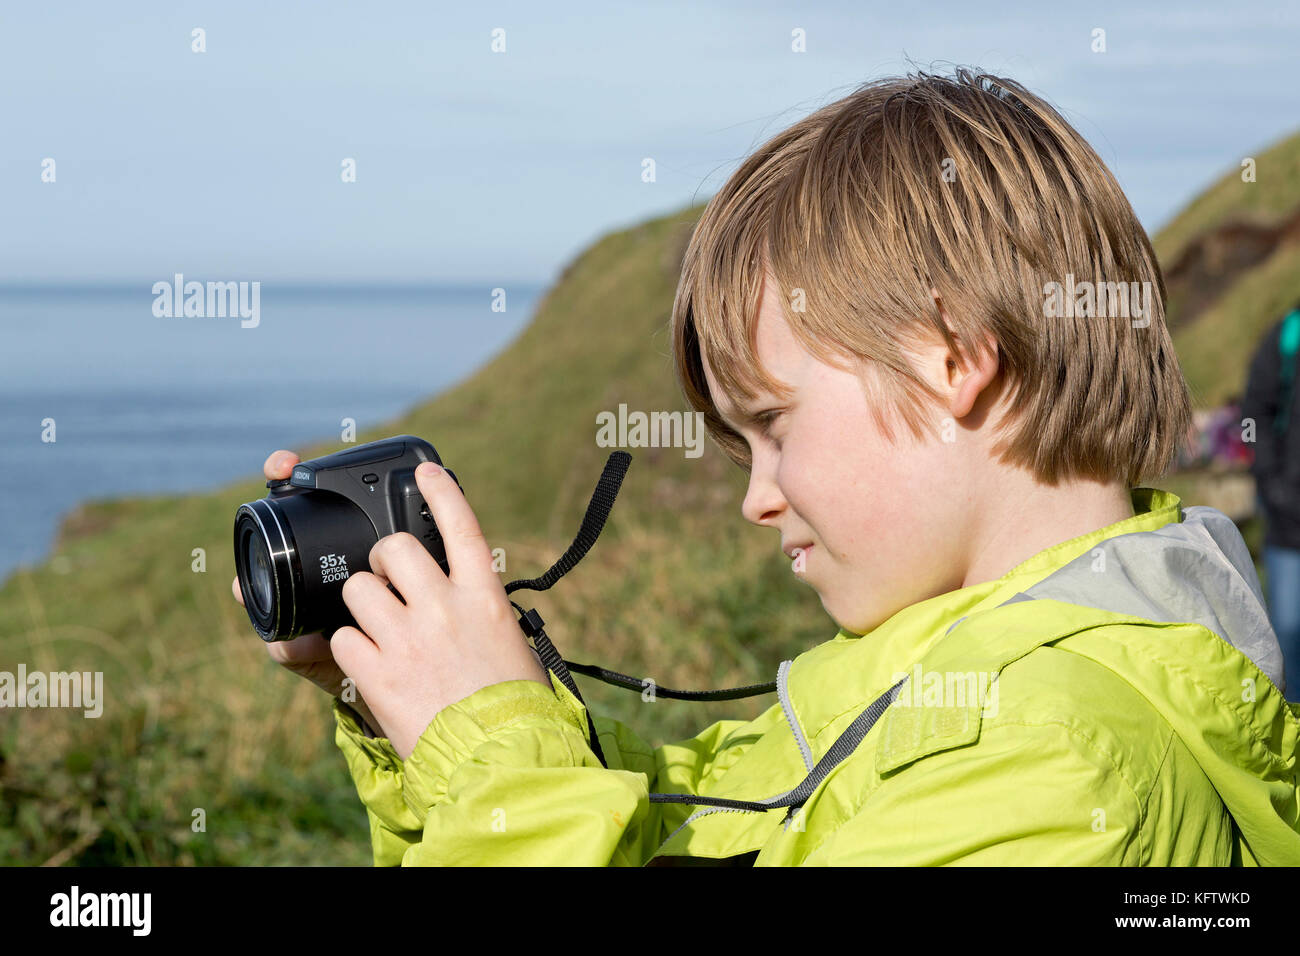 boy taking photos, Giants Causeway, Bushmills, Co. Antrim, Northern Ireland - Stock Image